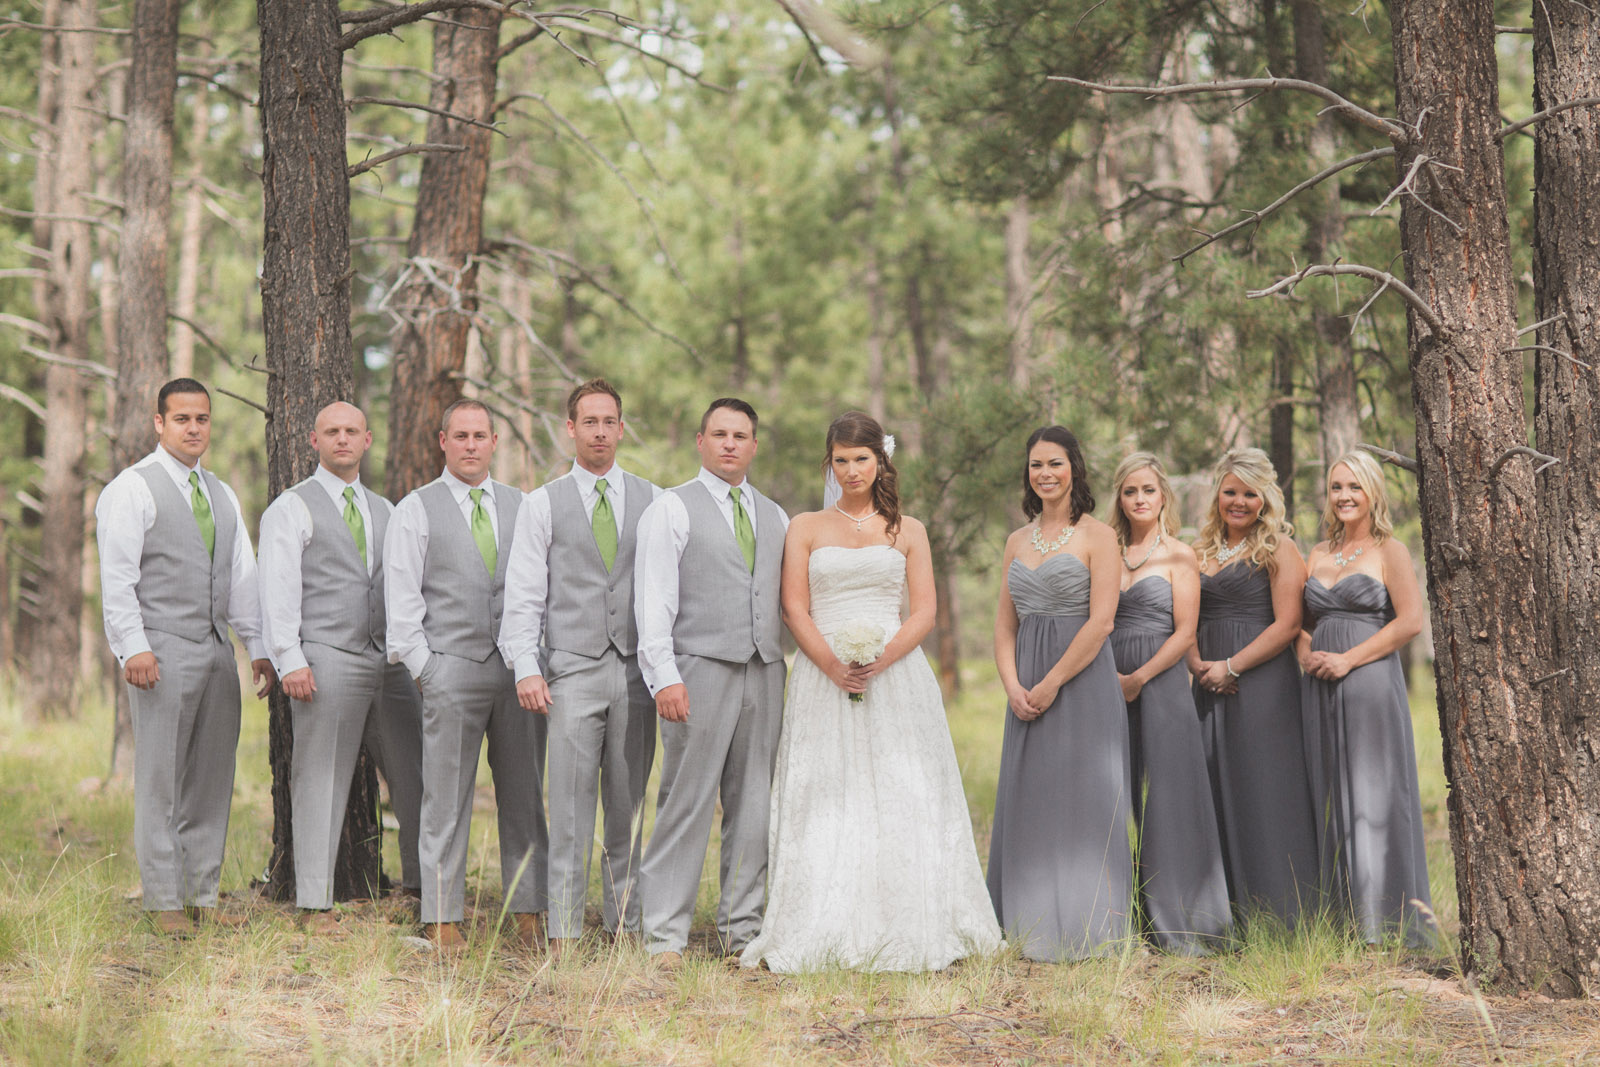 090-lake-bokeh-trees-groom-bride-wedding-cabin-woods-forest-pictures-photos-dress-photography-portraits-first-look-firstlook-reveal-happy-farmington-aztec-durango-mancos-co-nm